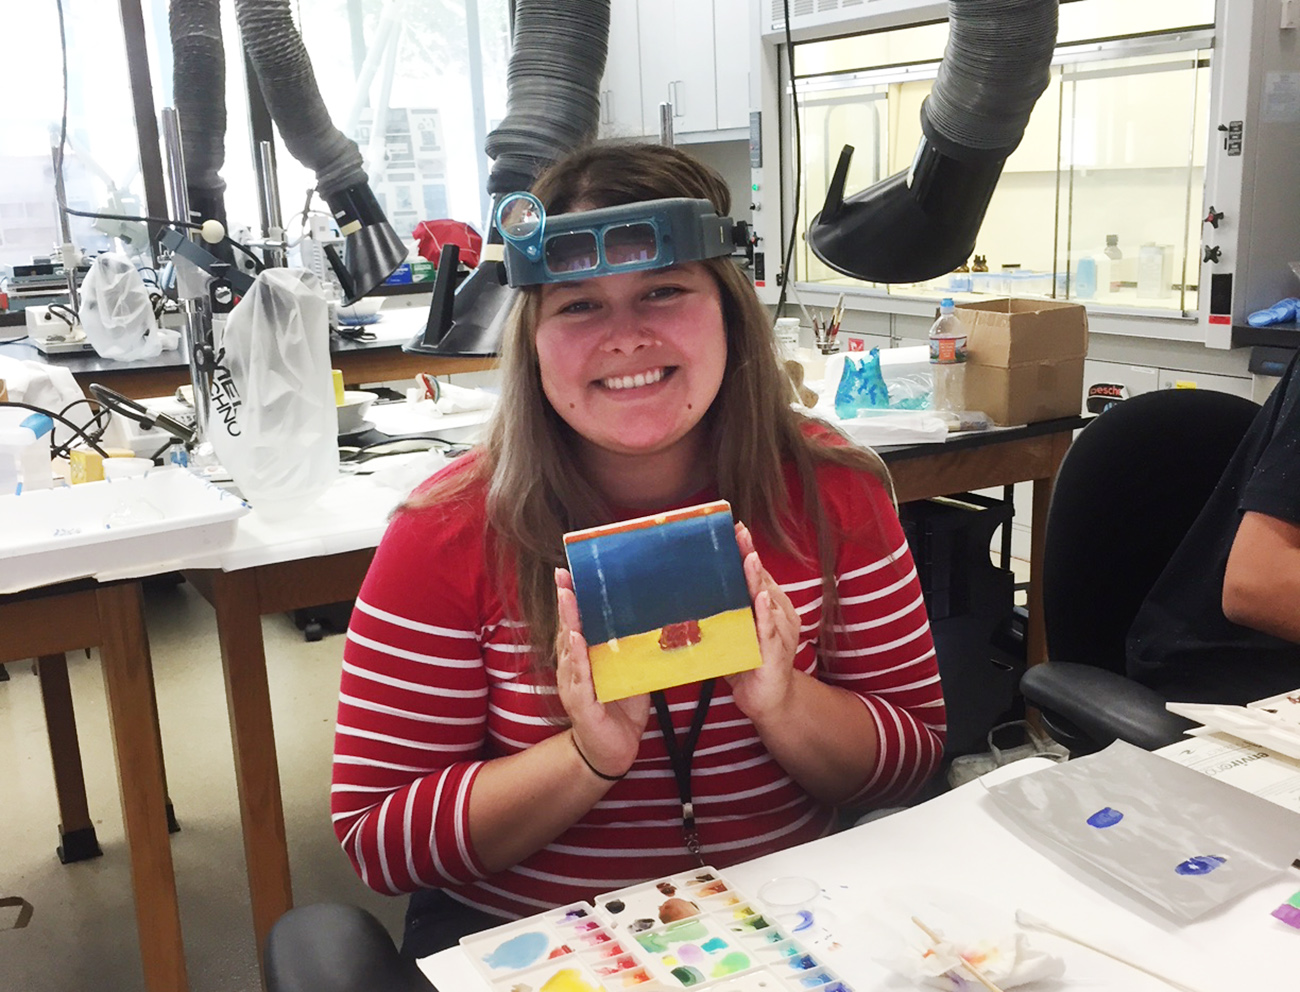 A female holds a tile towards the camera. She is wearing conservation goggles inside of a lab.